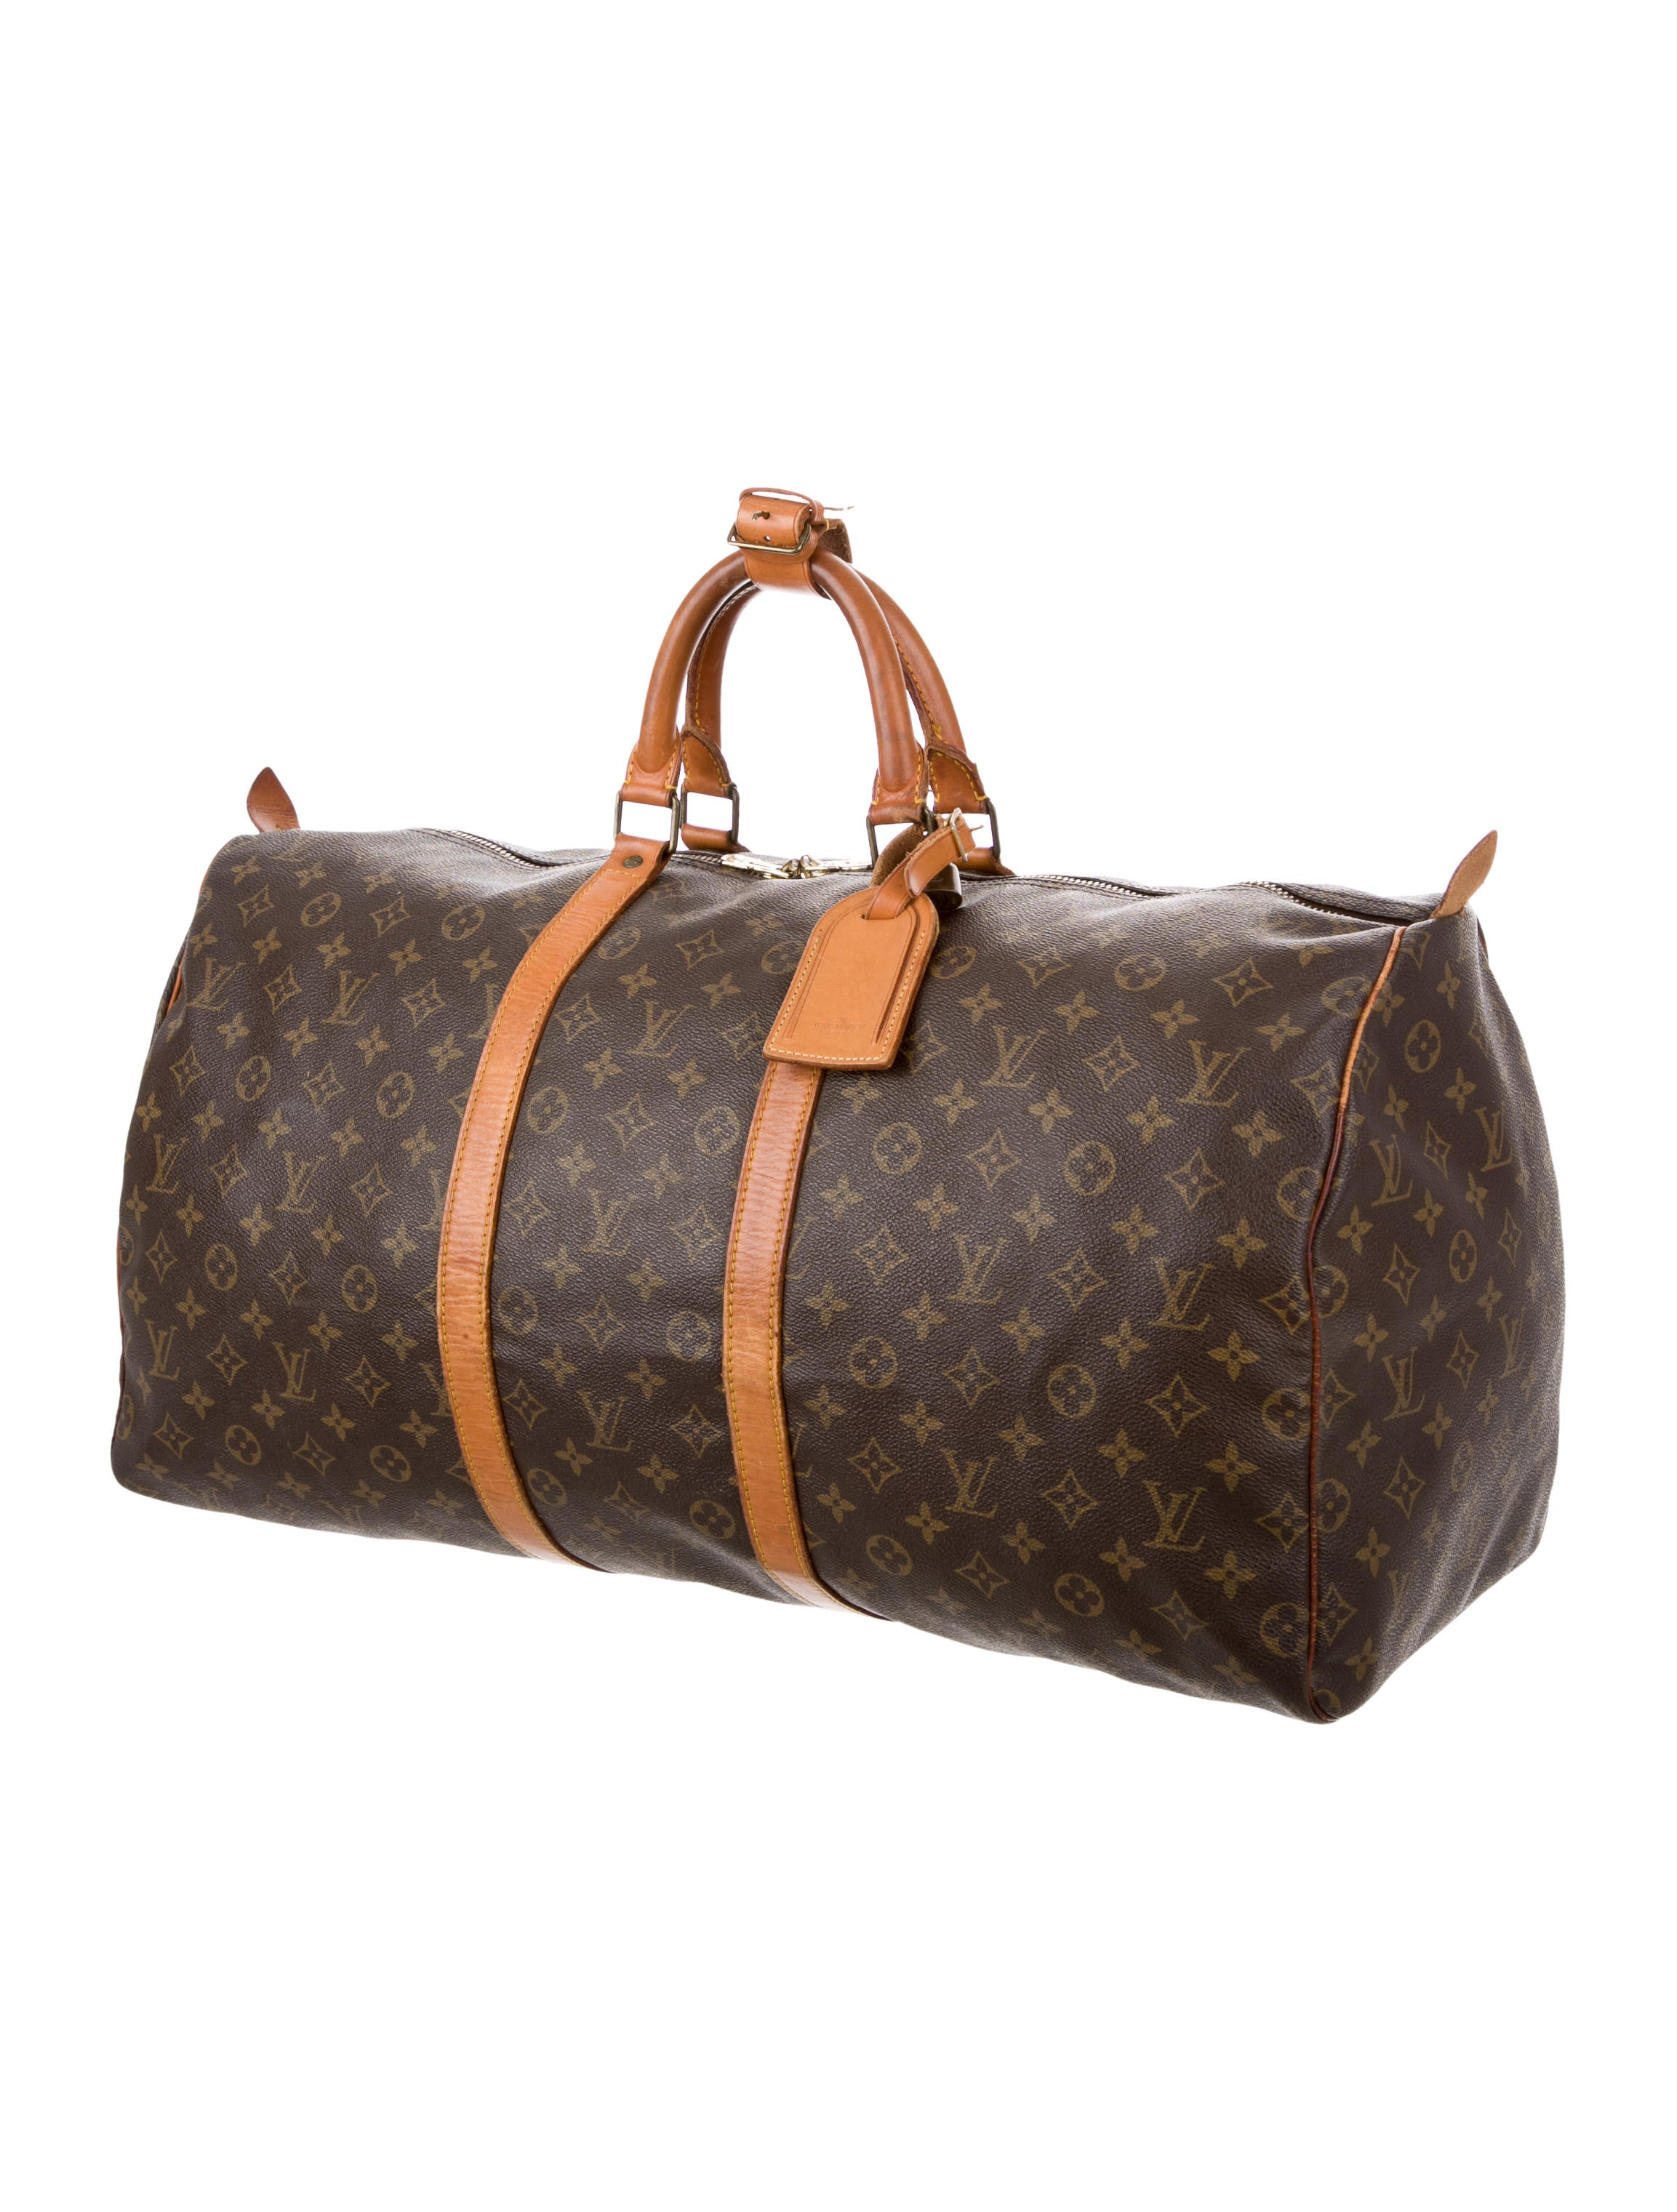 louis vuitton monogram keepall 55 bags lou116323 the. Black Bedroom Furniture Sets. Home Design Ideas